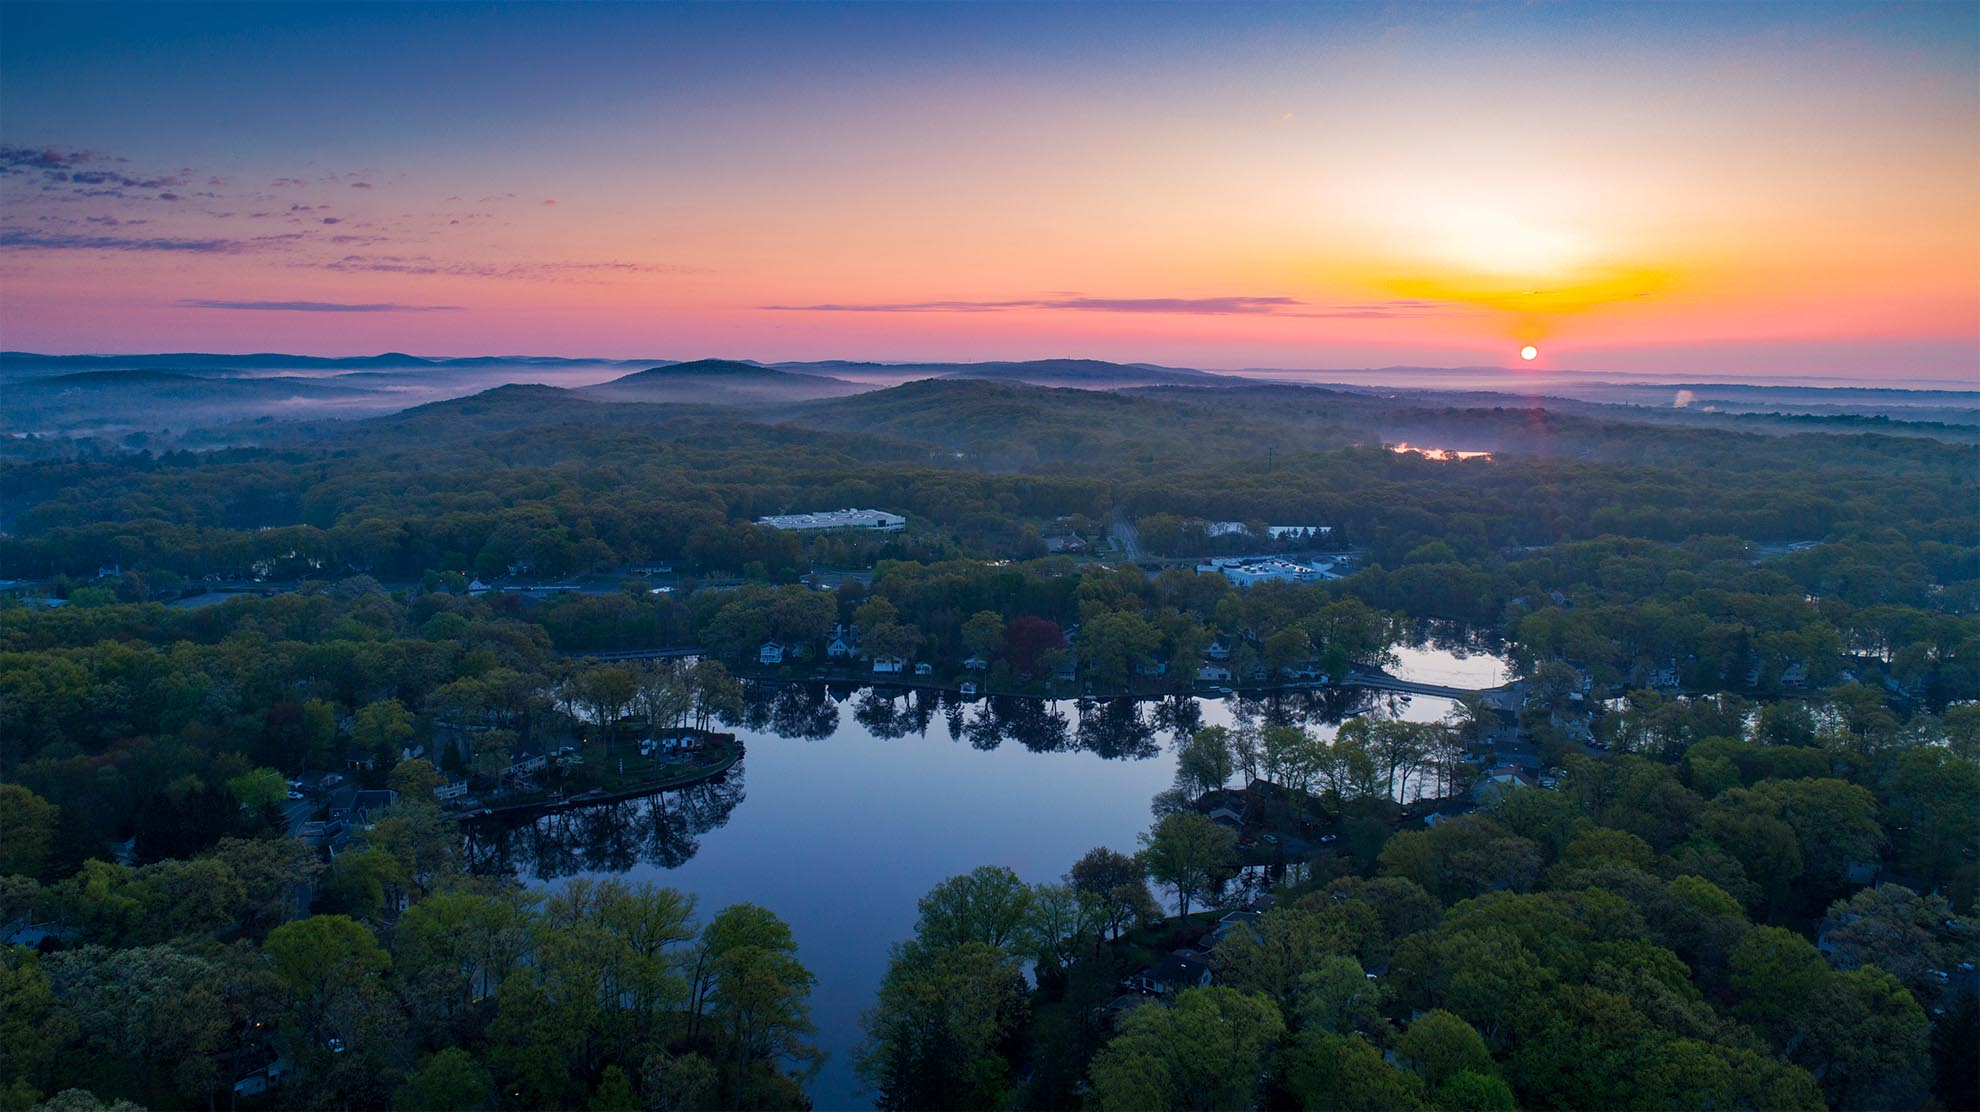 Photograph of sunrise over Rainbow Lakes NJ taken with a drone